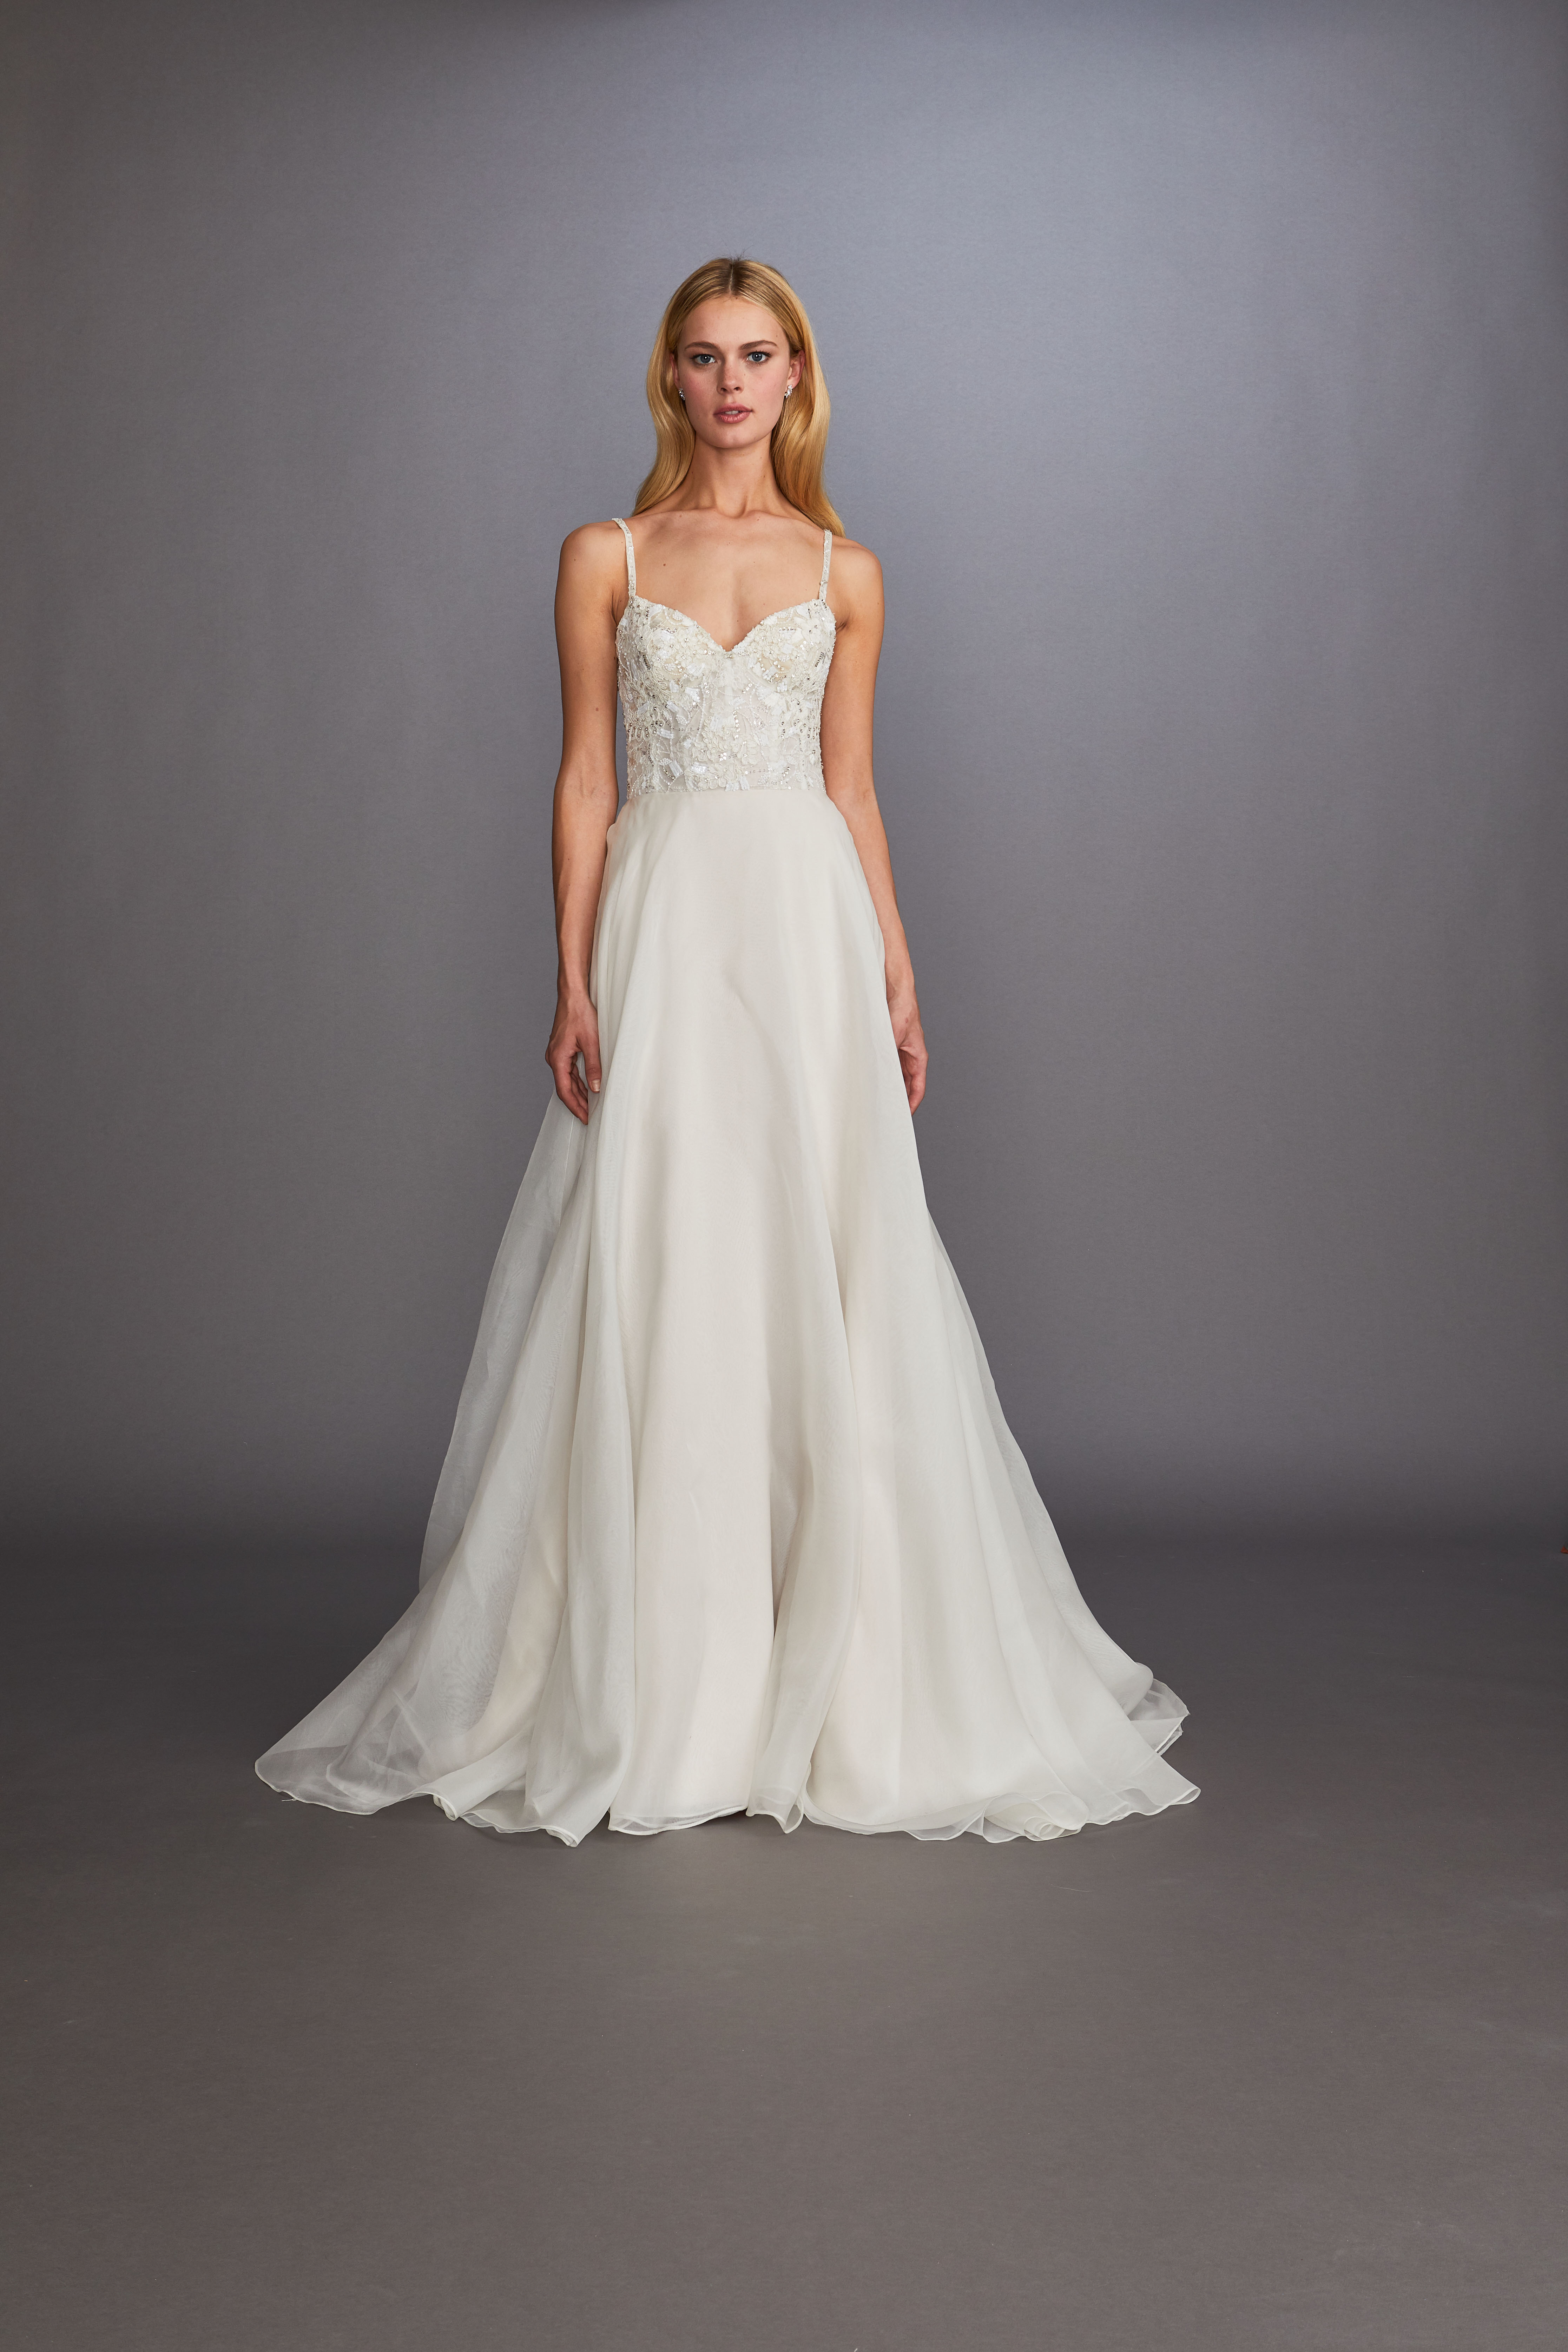 spaghetti strap sweetheart neckline lace beading tulle a-line wedding dress Allison Webb Spring 2020